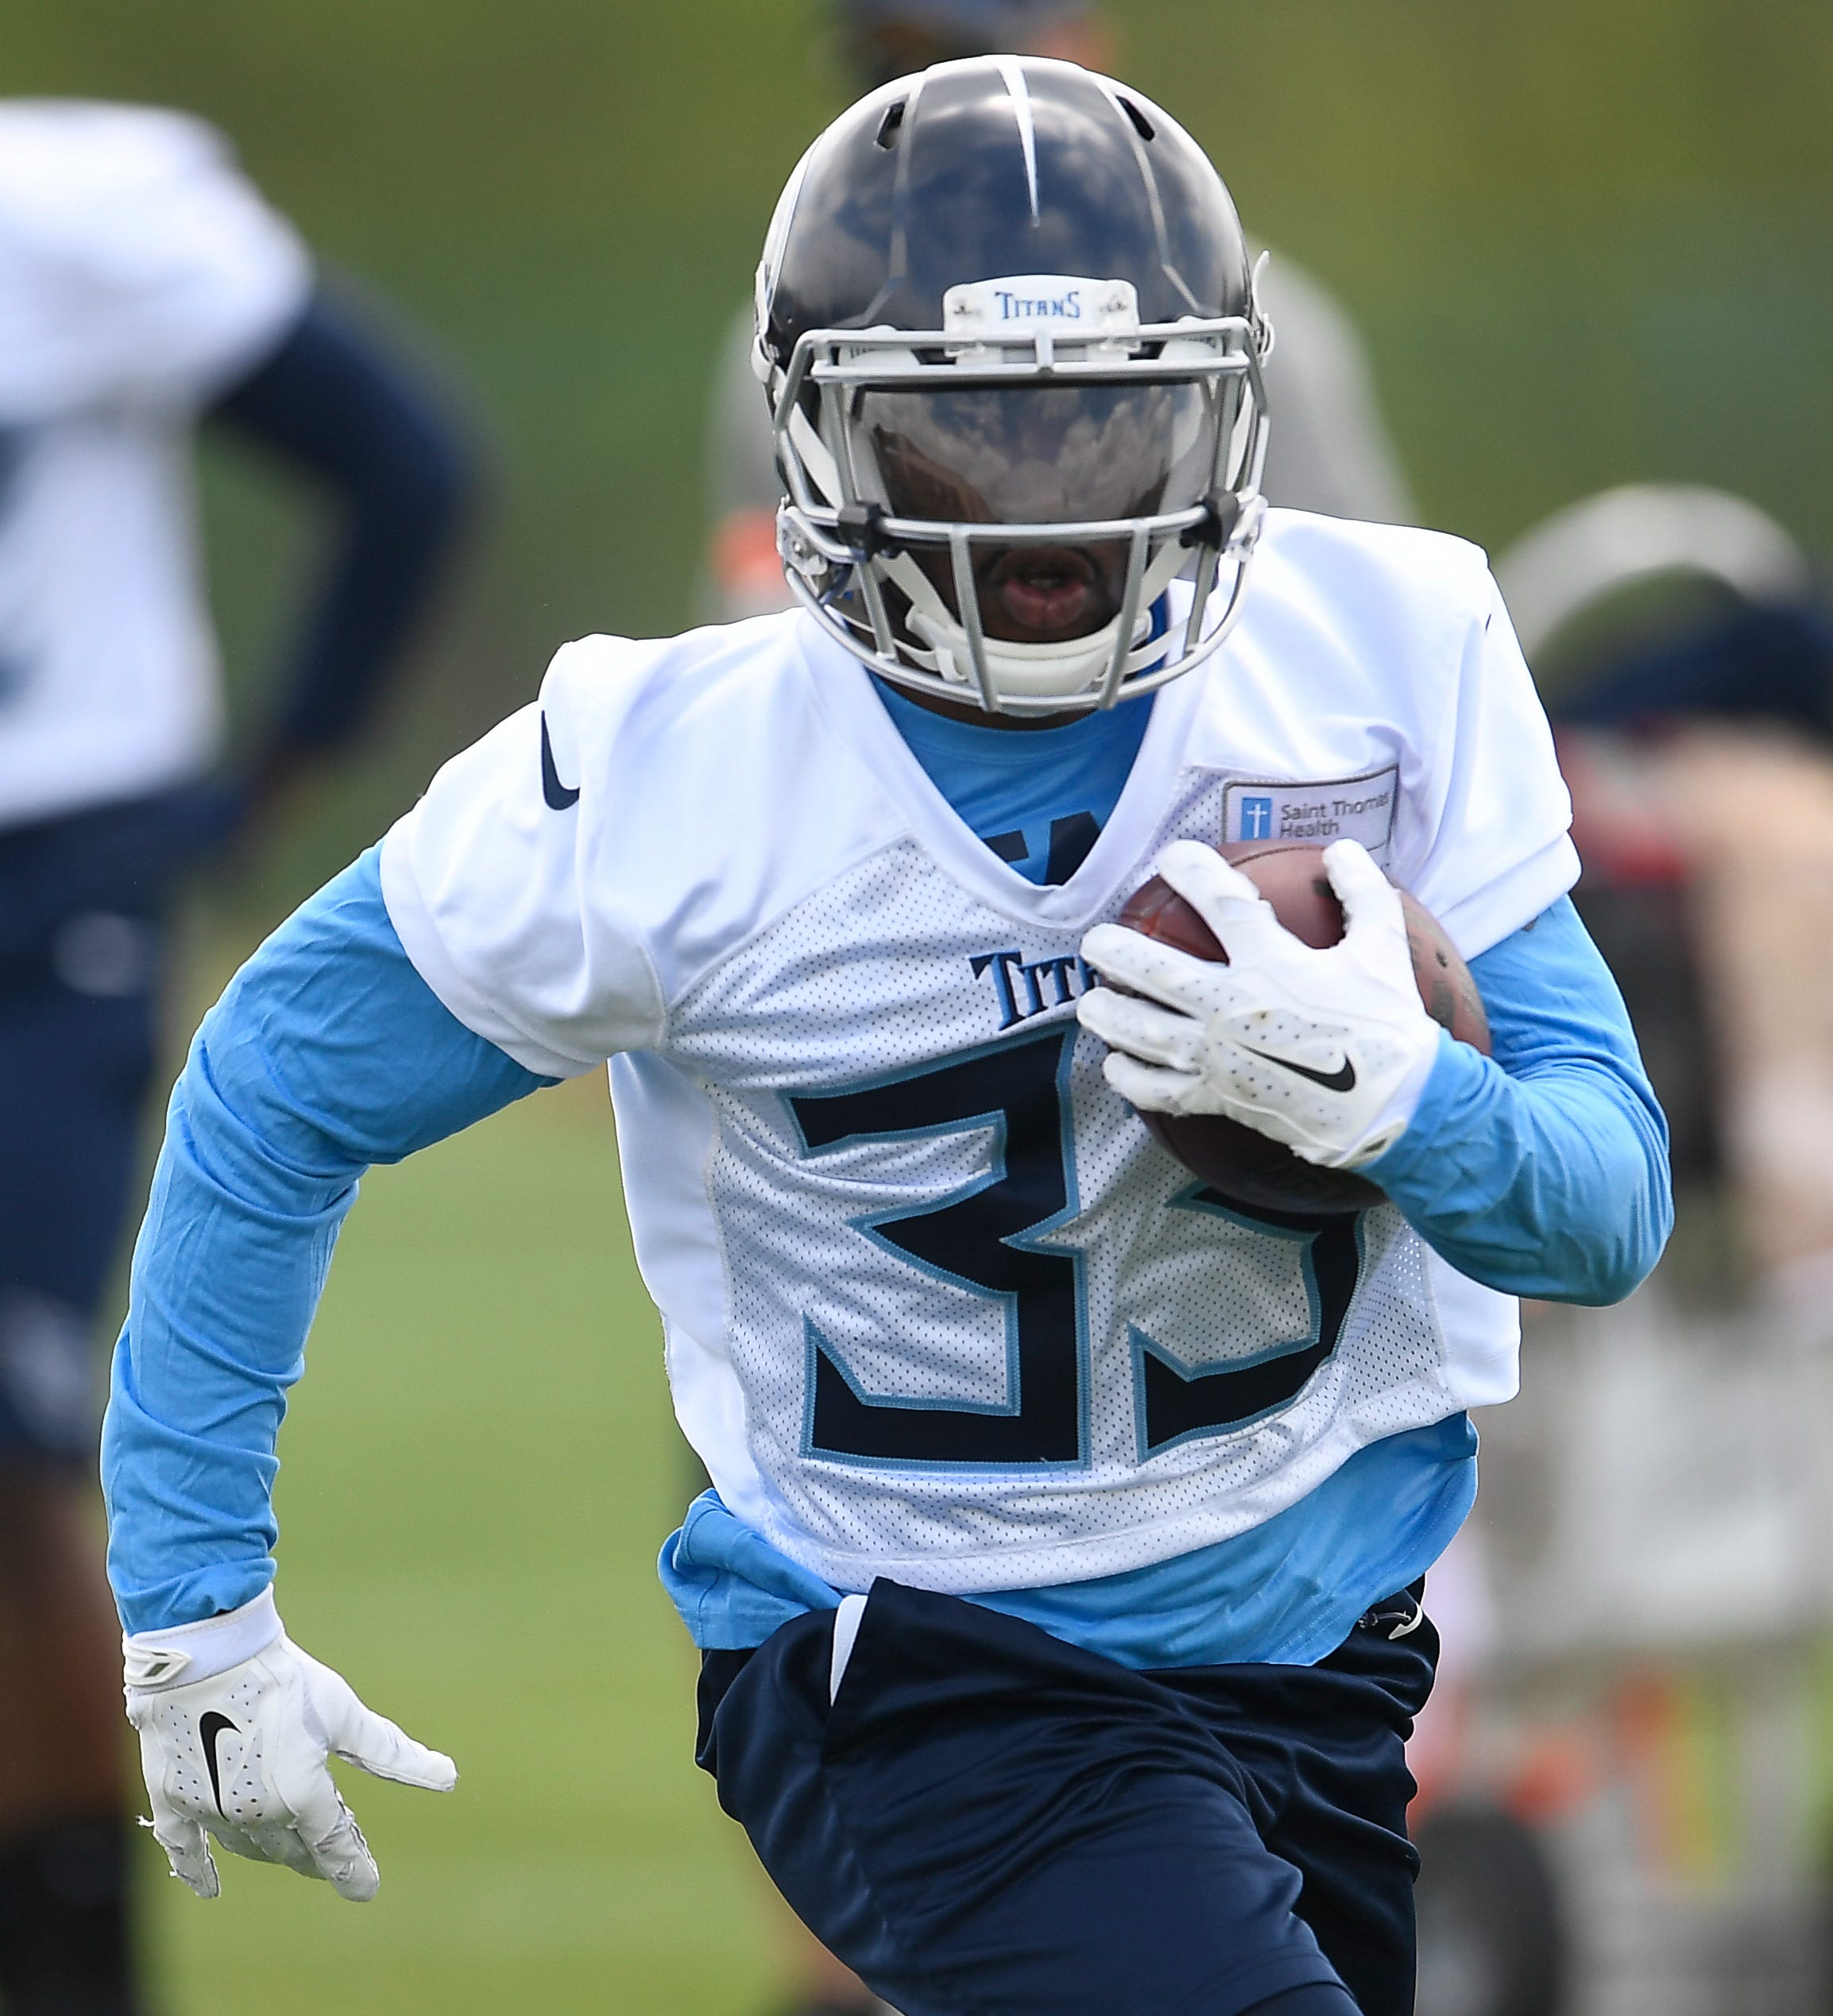 Titans' Derrick Henry, Dion Lewis expect to form top running back tandem in NFL